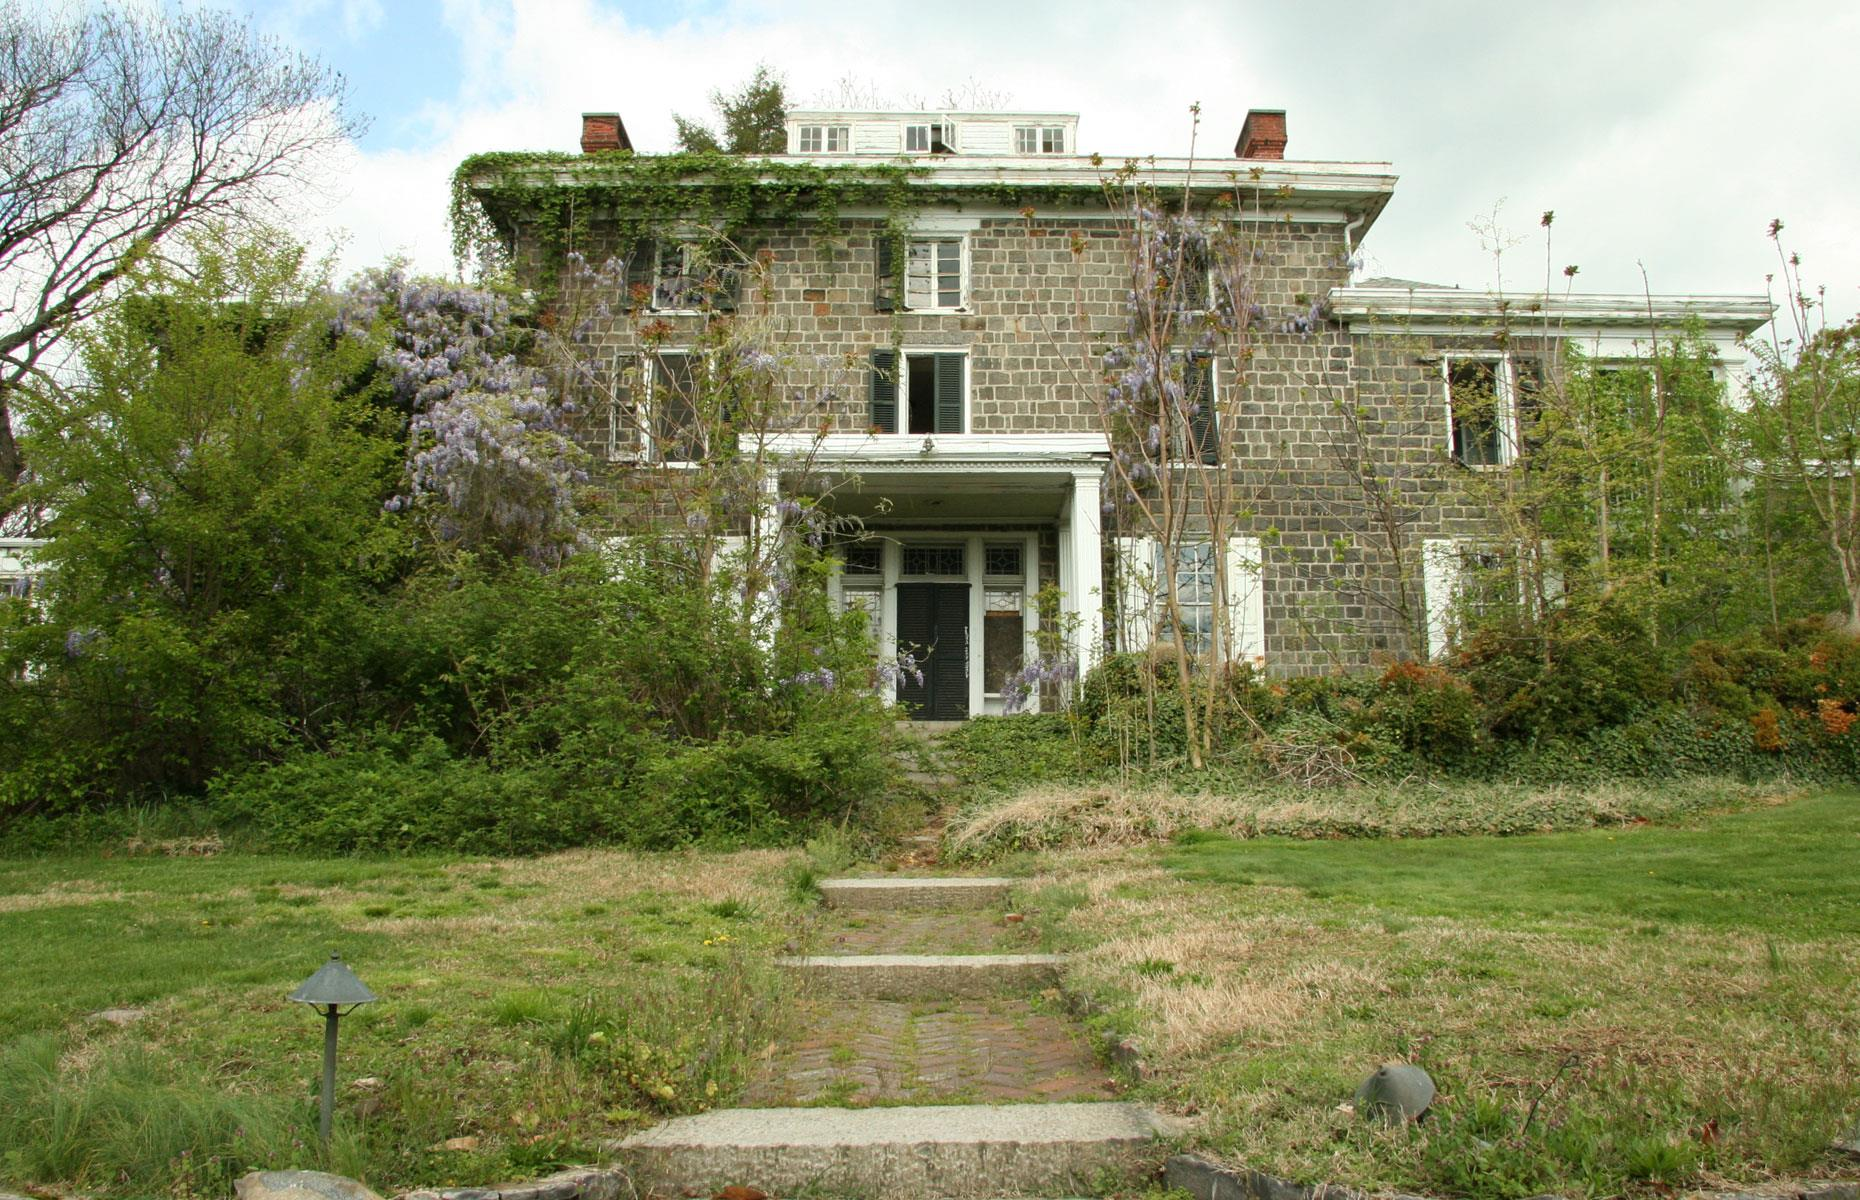 Slide 16 of 101: This country mansion was completed in 1844 for cotton merchant John Rodney Brinckle and was named after the Rock of Gibraltar, a nod to the rugged outcrop on which it was constructed. Abandoned almost three decades ago, the house has fallen into disrepair.